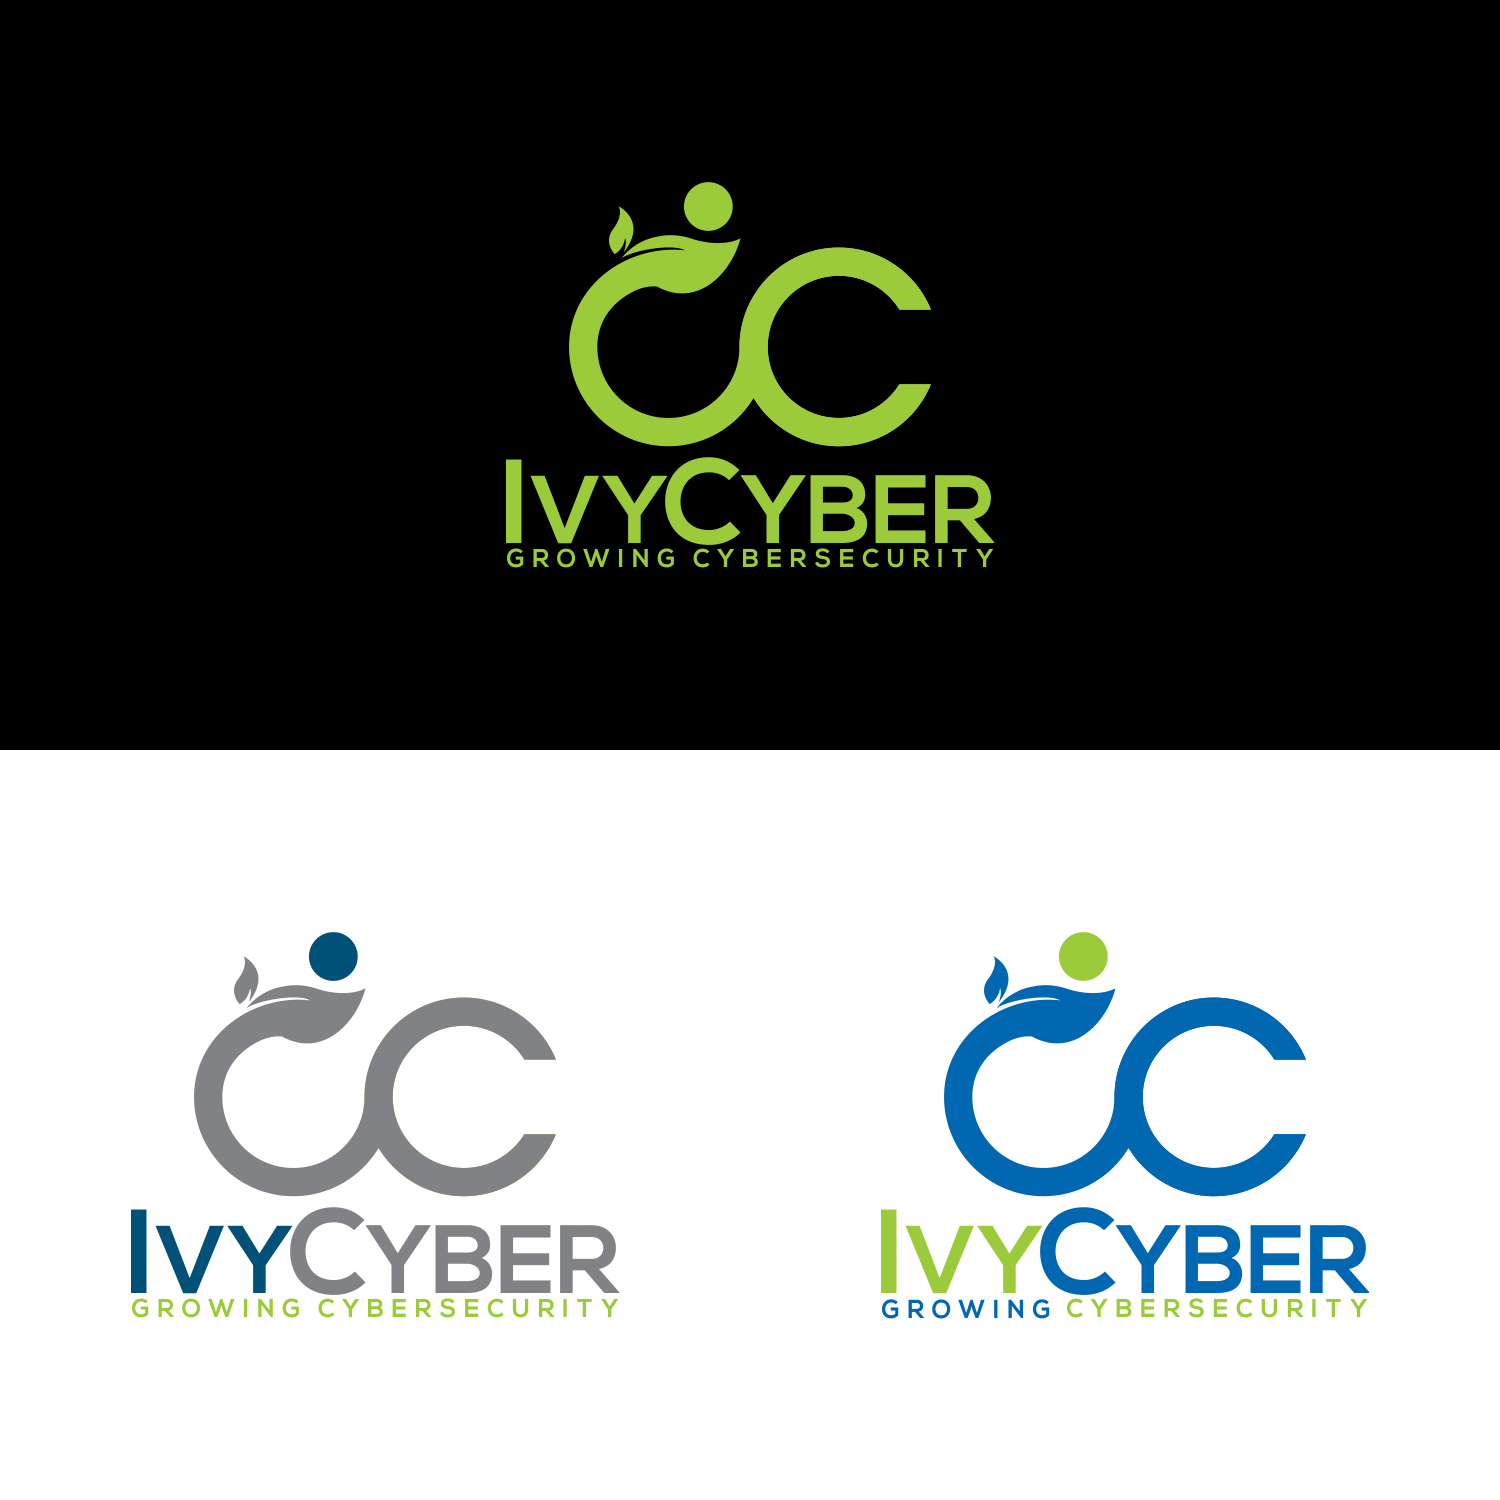 Elegant, Playful Logo Design for Ivy Cyber Growing.